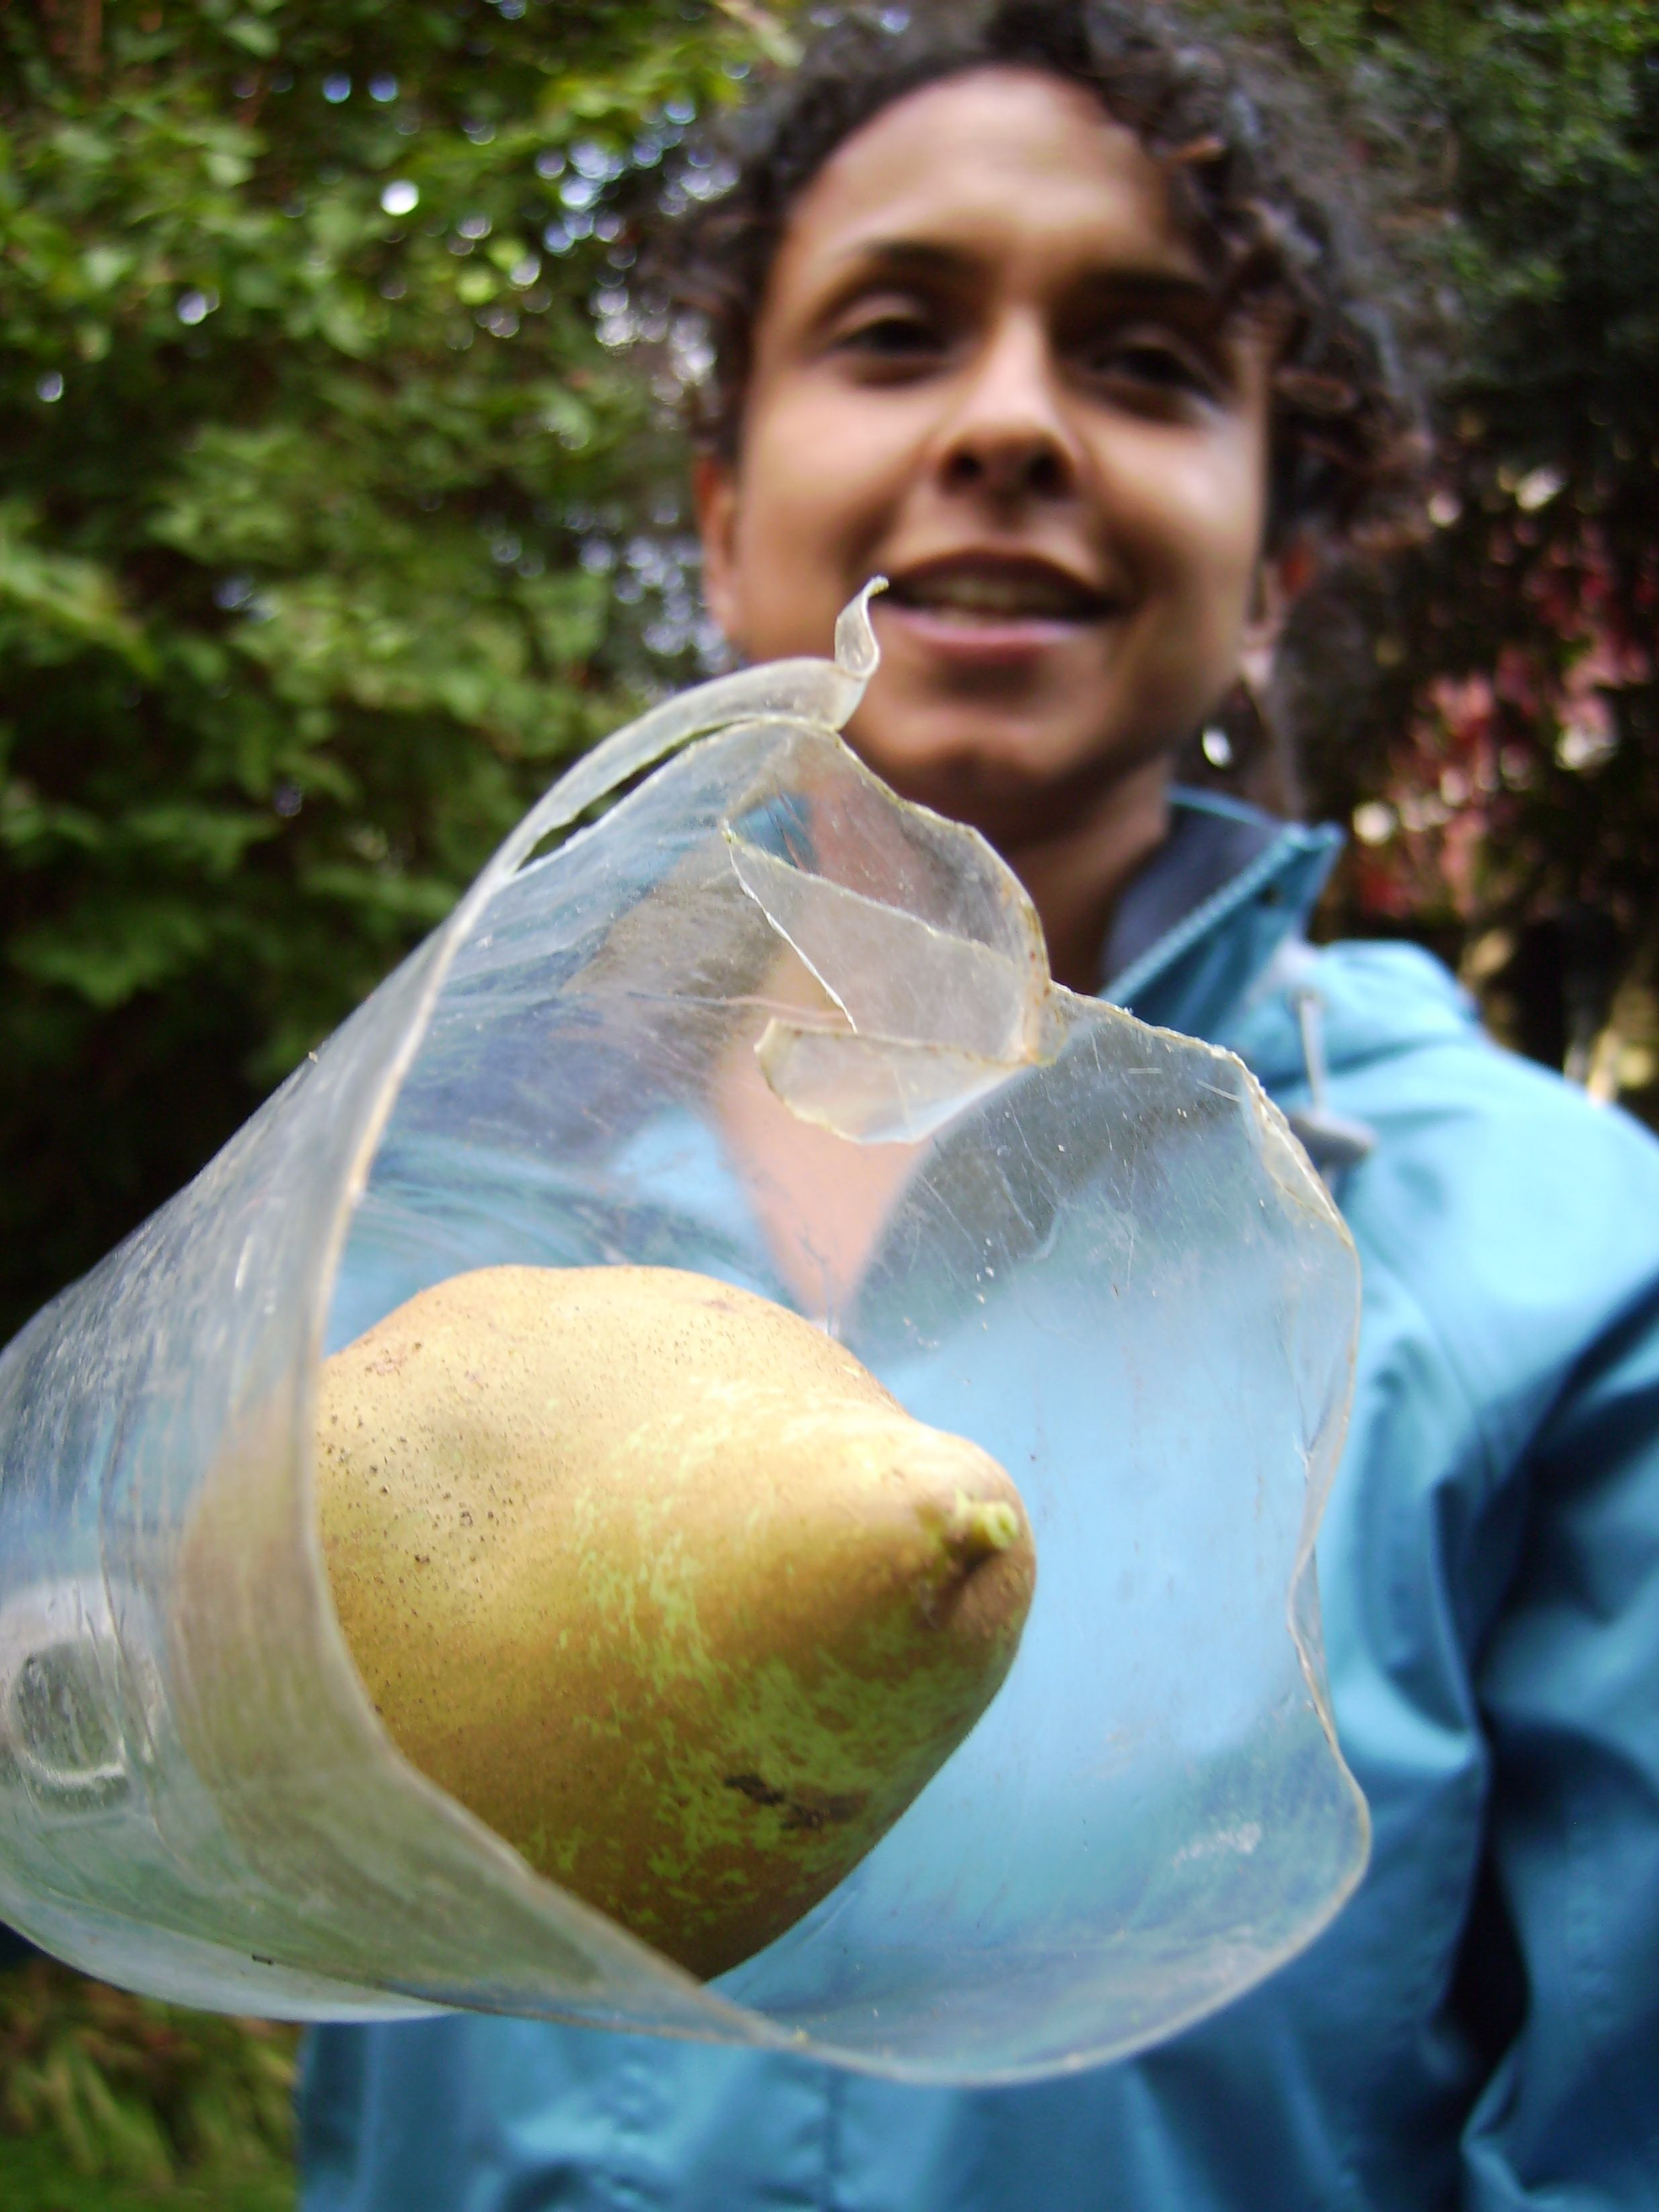 Pear picked with homemade fruit picker